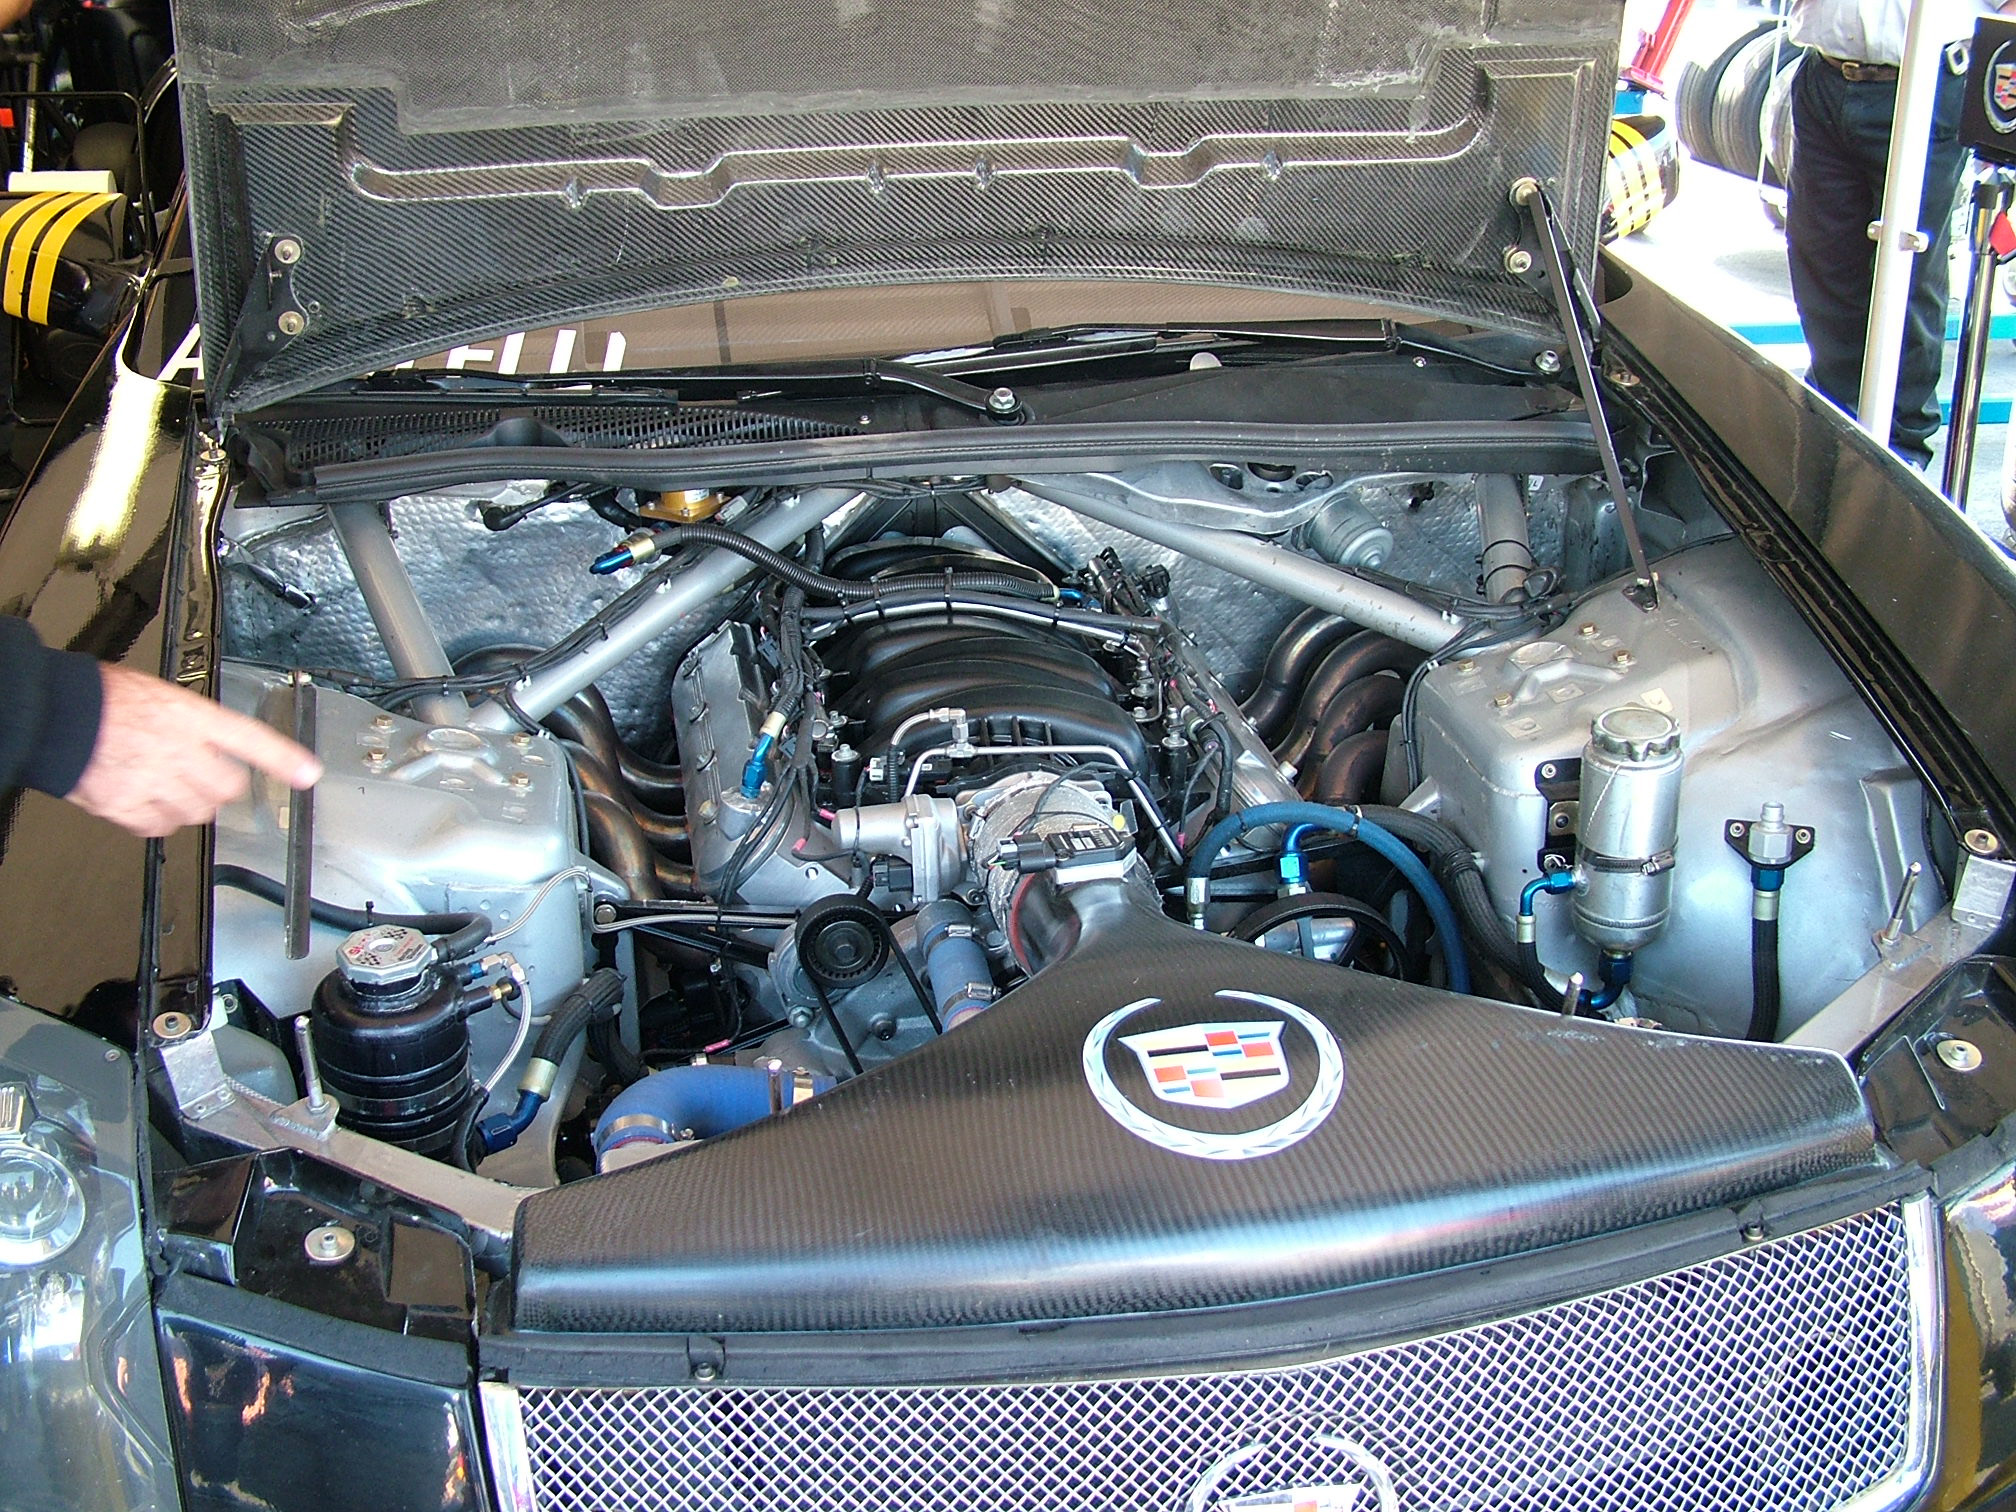 Cts 3 6l Engine Diagram Quick Start Guide Of Wiring 2003 Cadillac Http Wwwcadillacforumscom Forums Rh 20 18 Travelmate Nz De Parts 2006